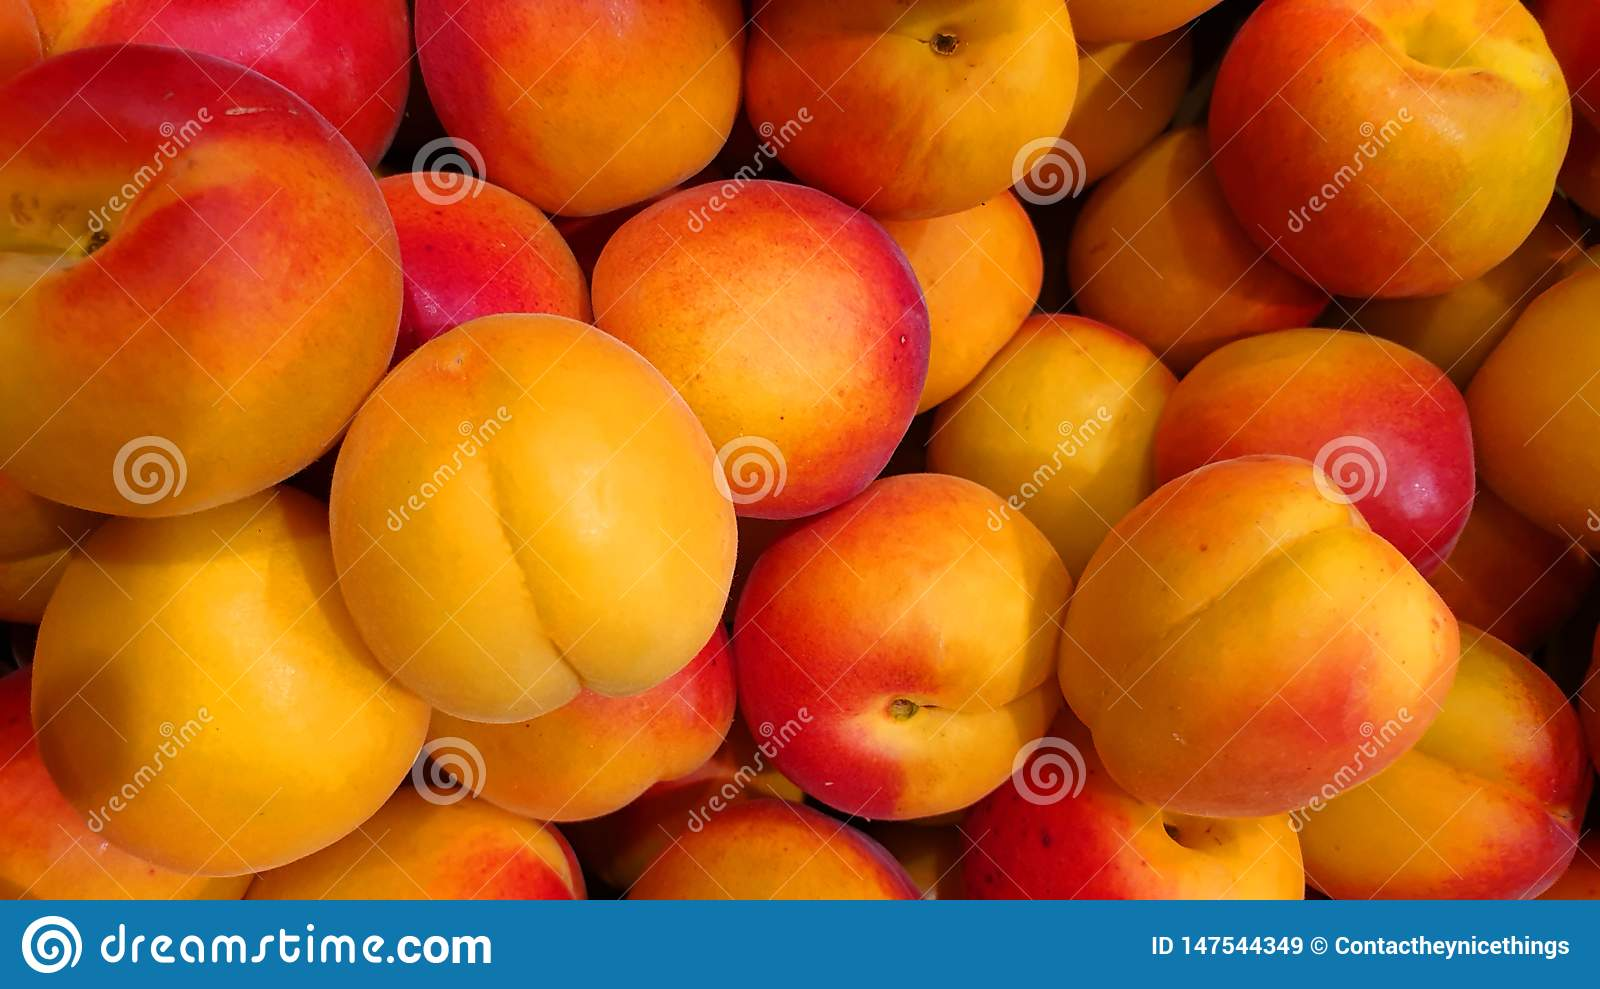 Apricots on the market